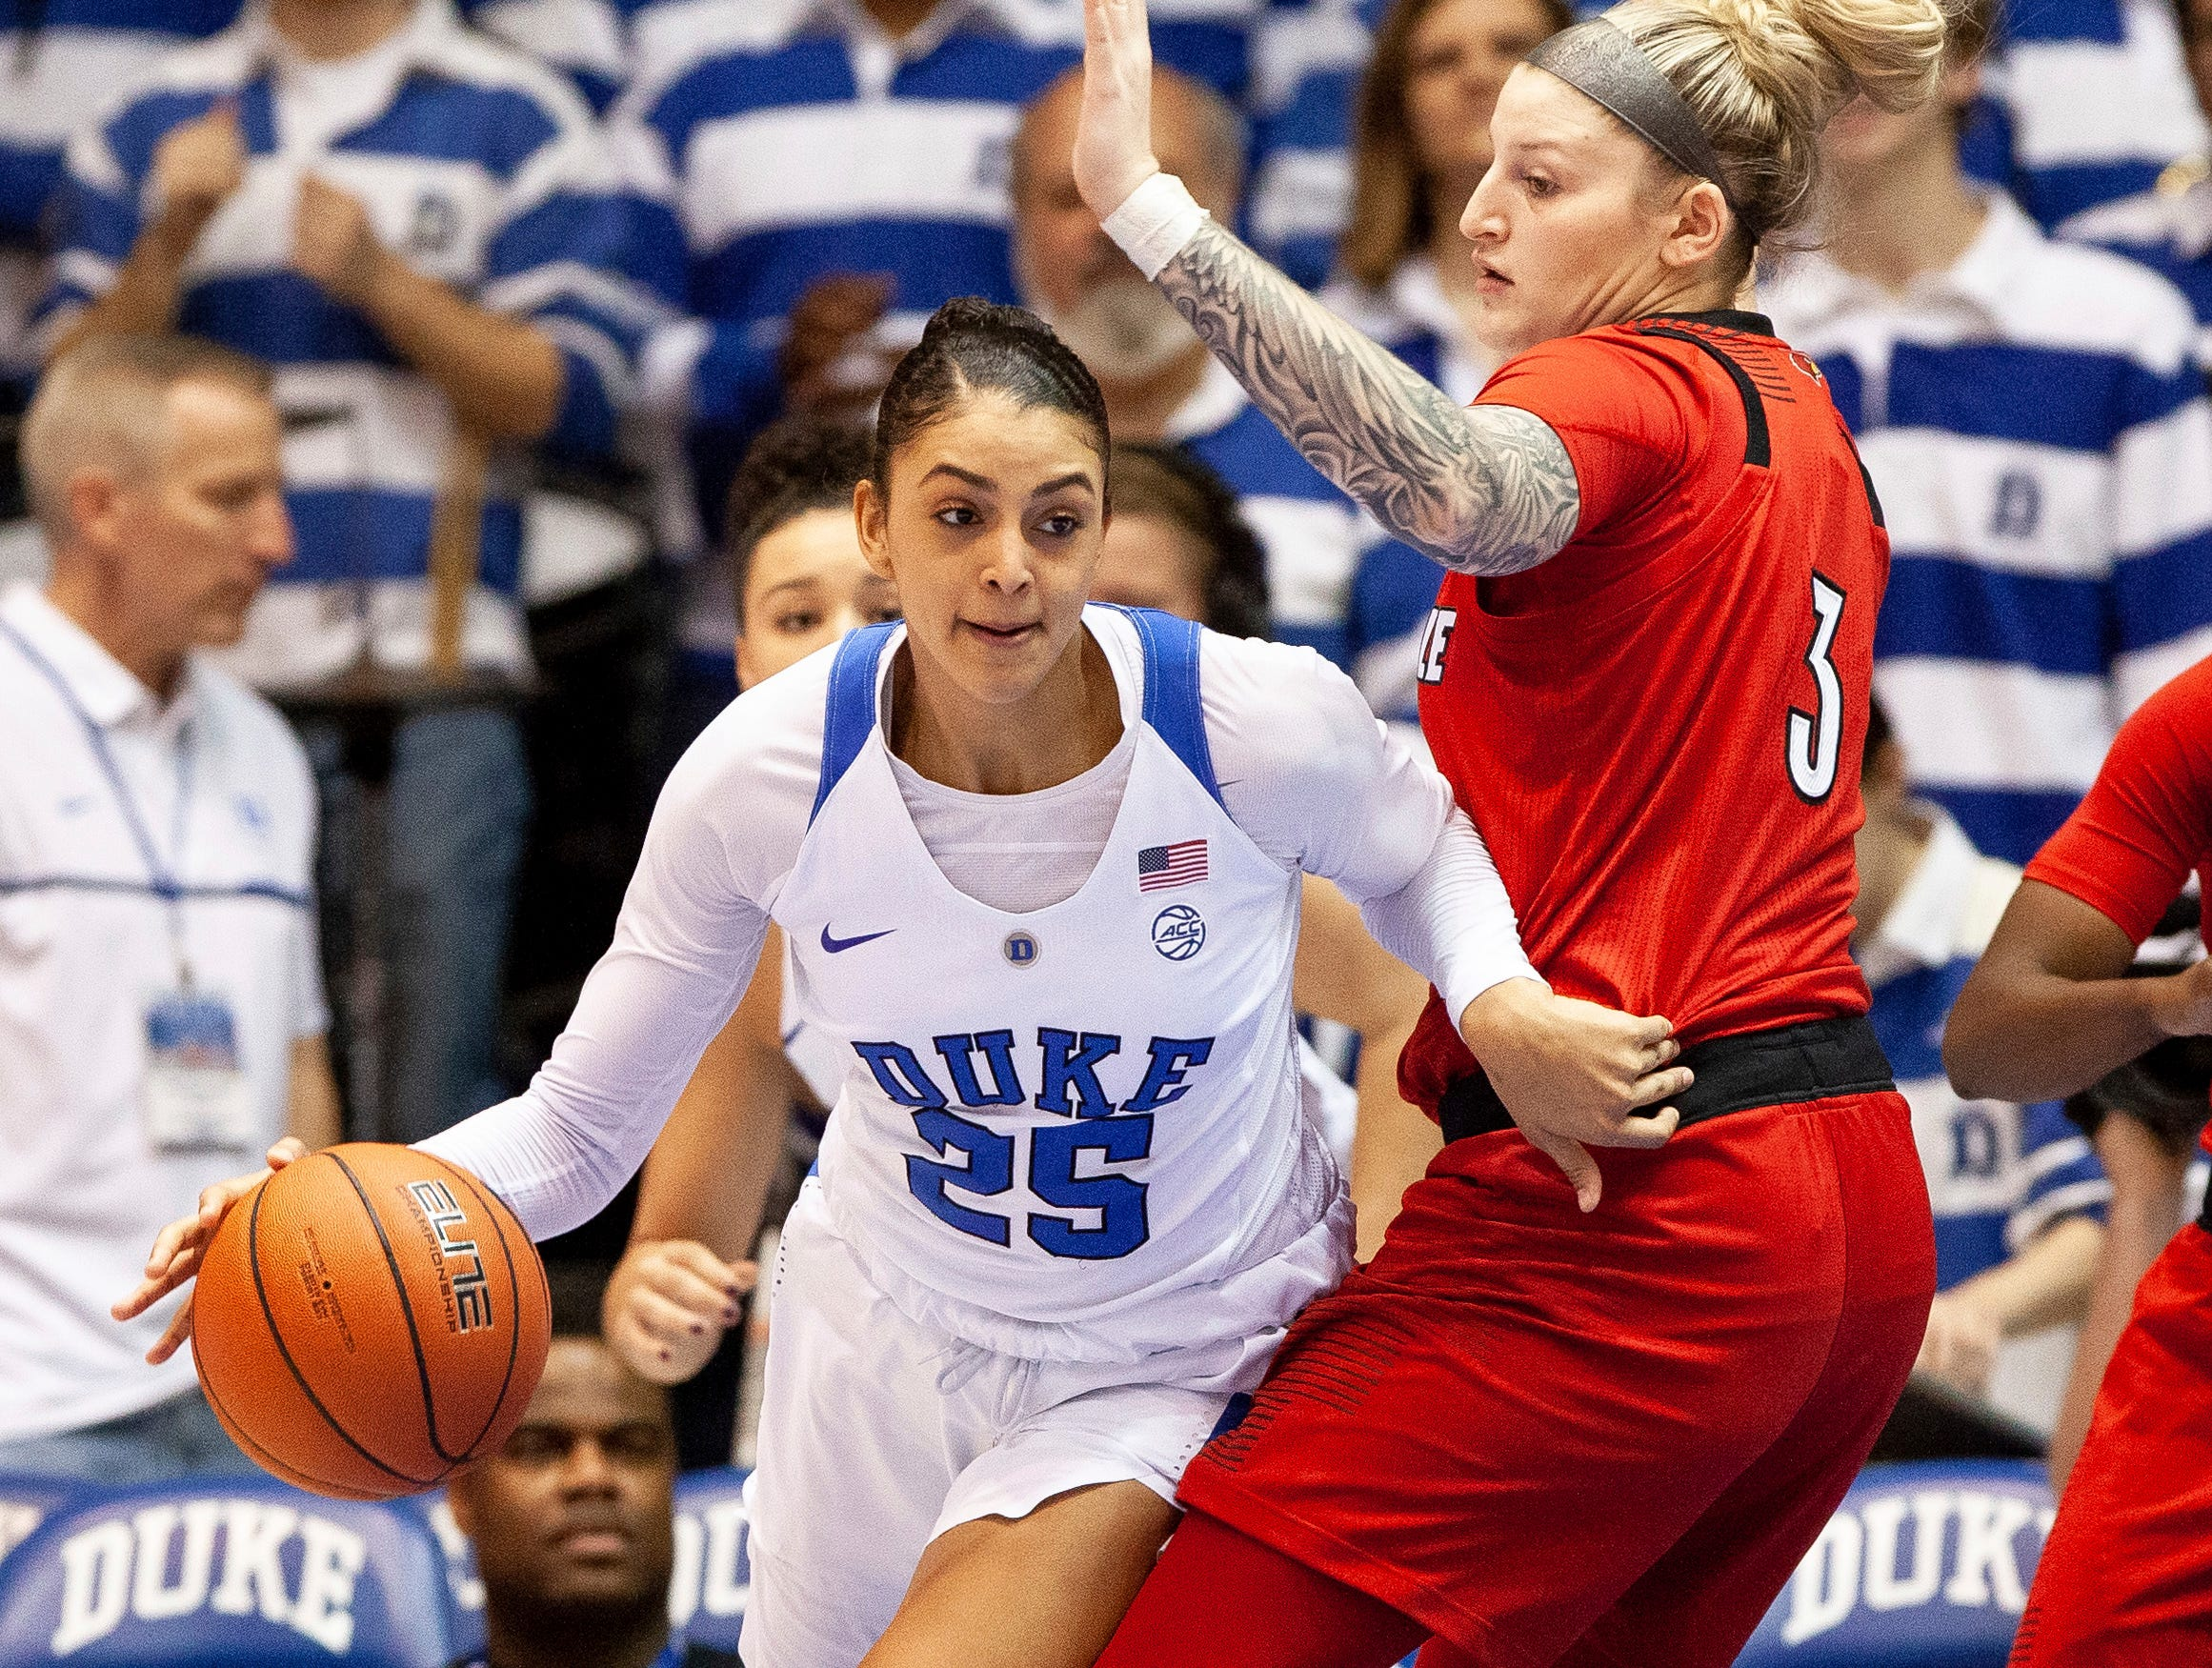 Duke's Jade Williams (25) works in the post against Louisville's Sam Fuehring (3) during the first half of an NCAA college basketball game in Durham, N.C., Sunday, Jan. 6, 2019.